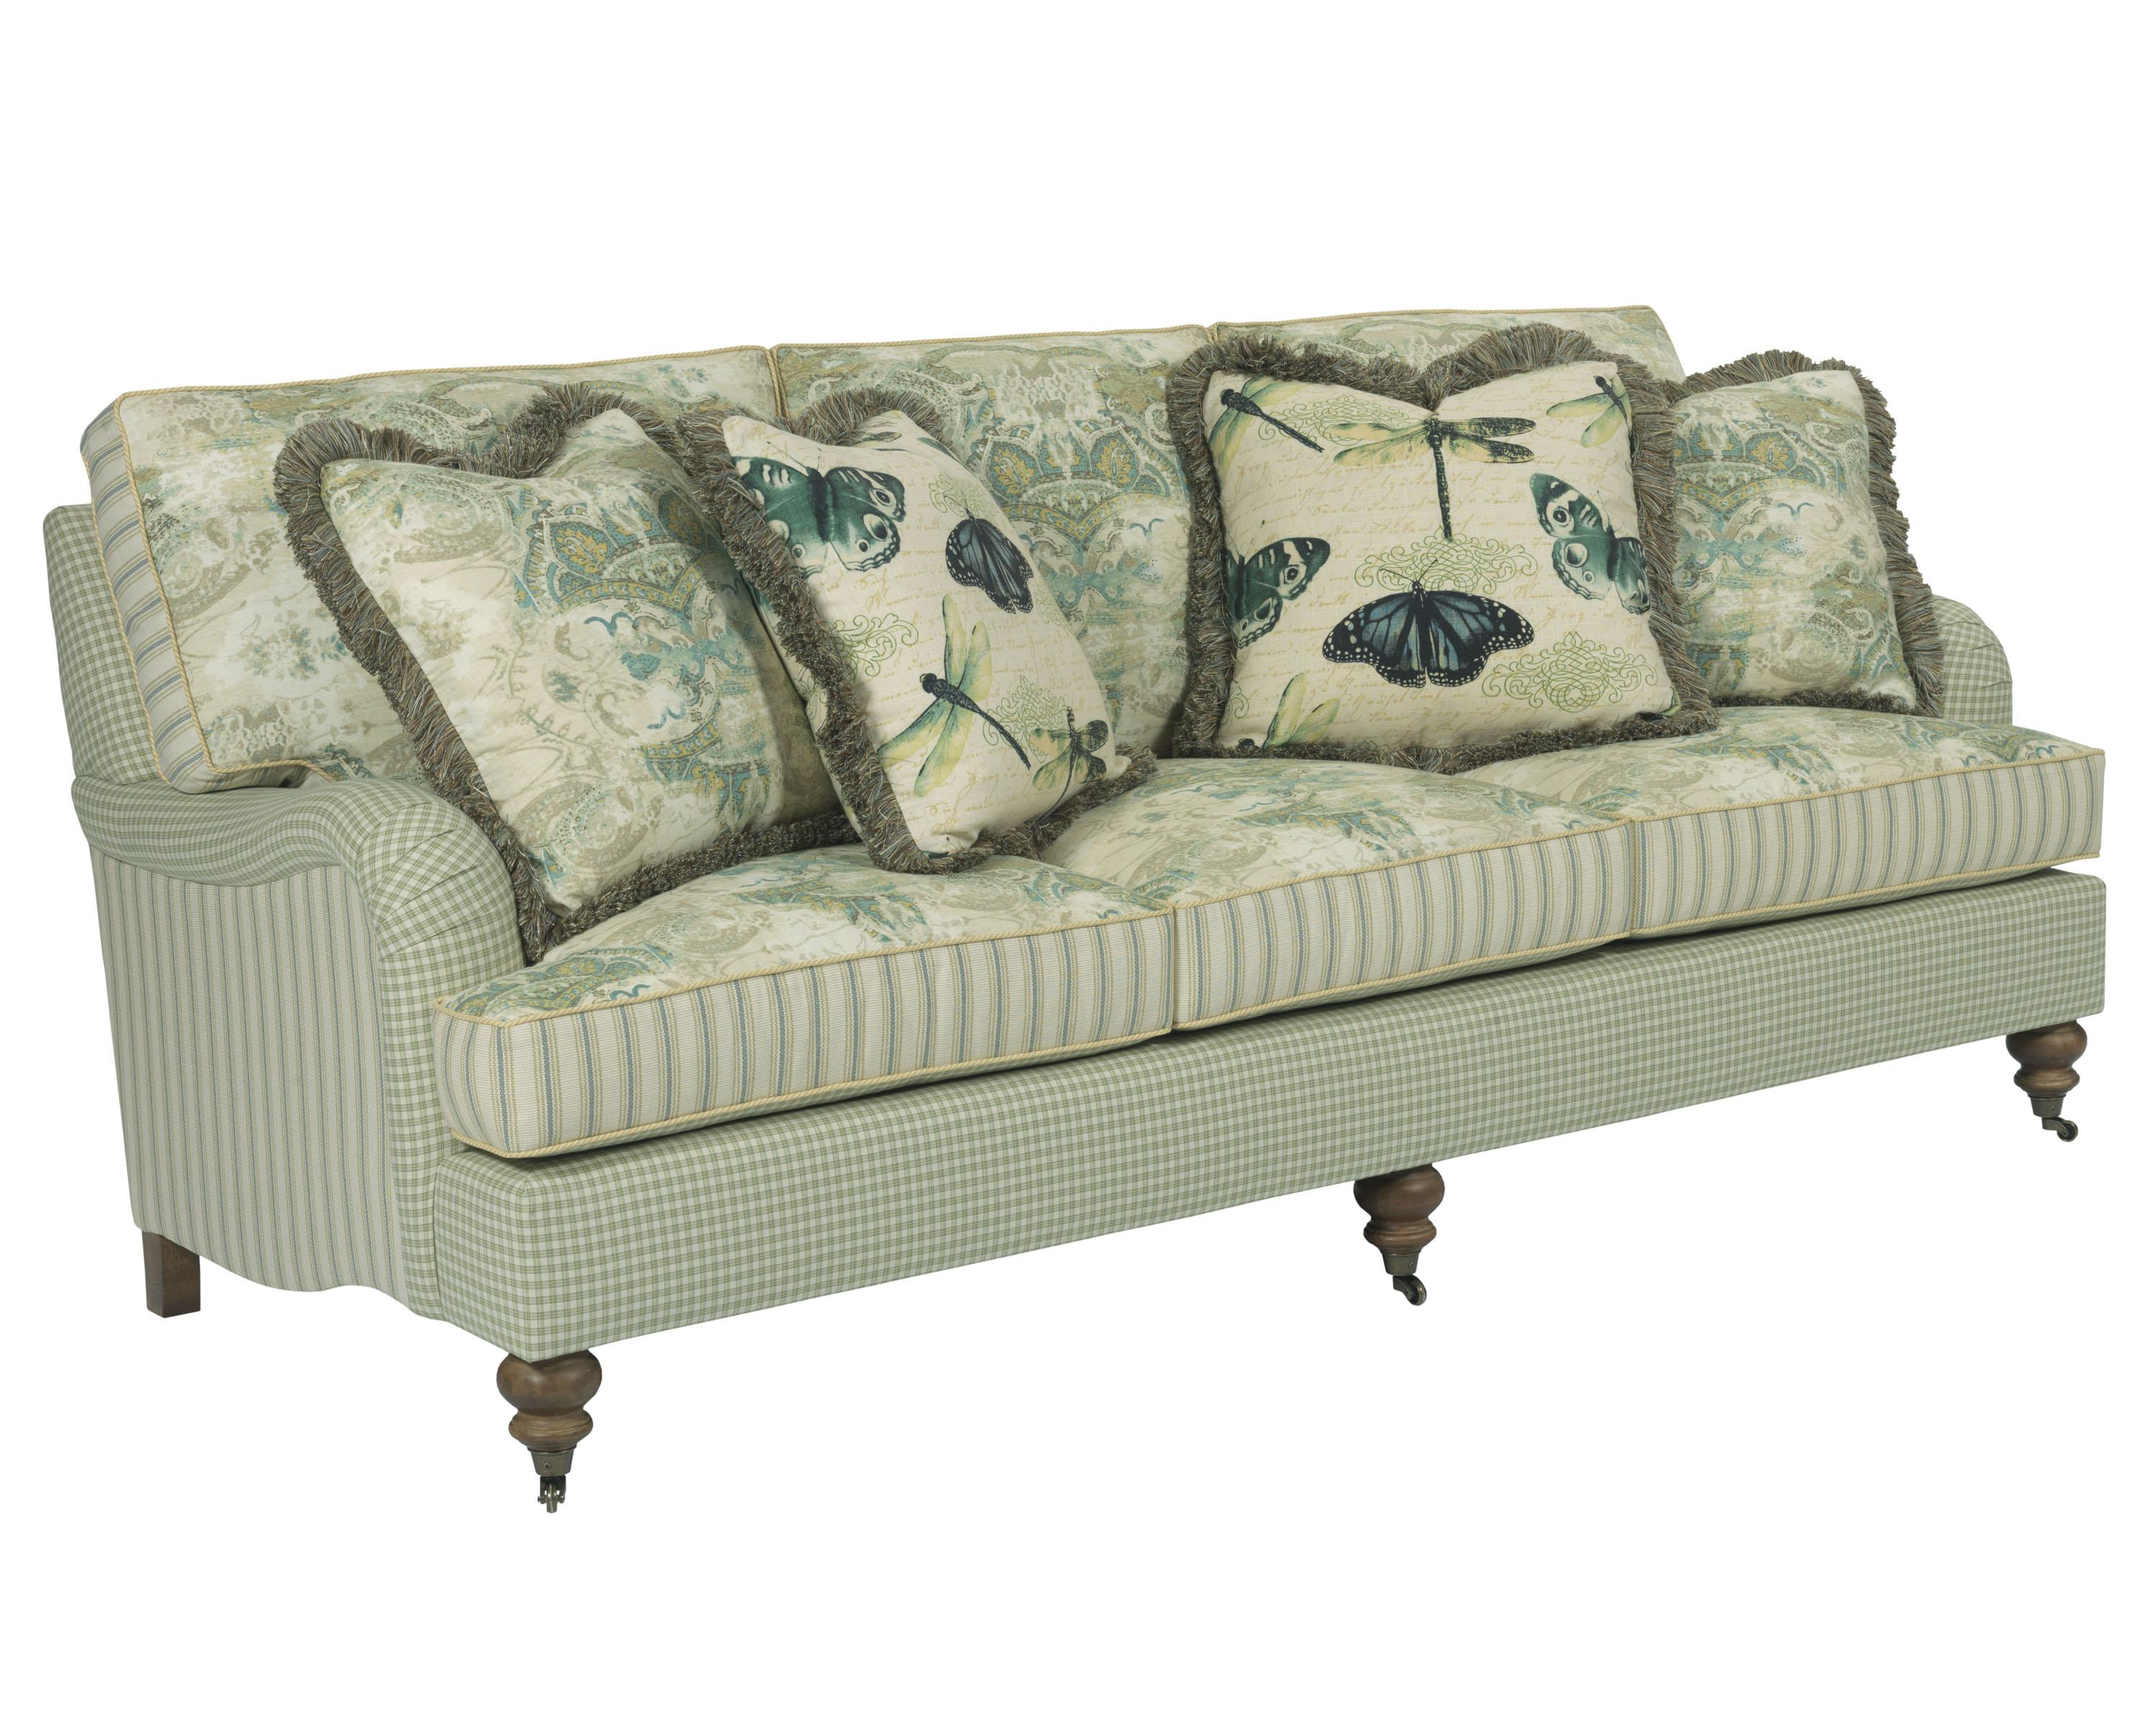 Traditional Sofa With English Arms And Turned Legs By Kincaid Furniture Wolf And Gardiner Wolf